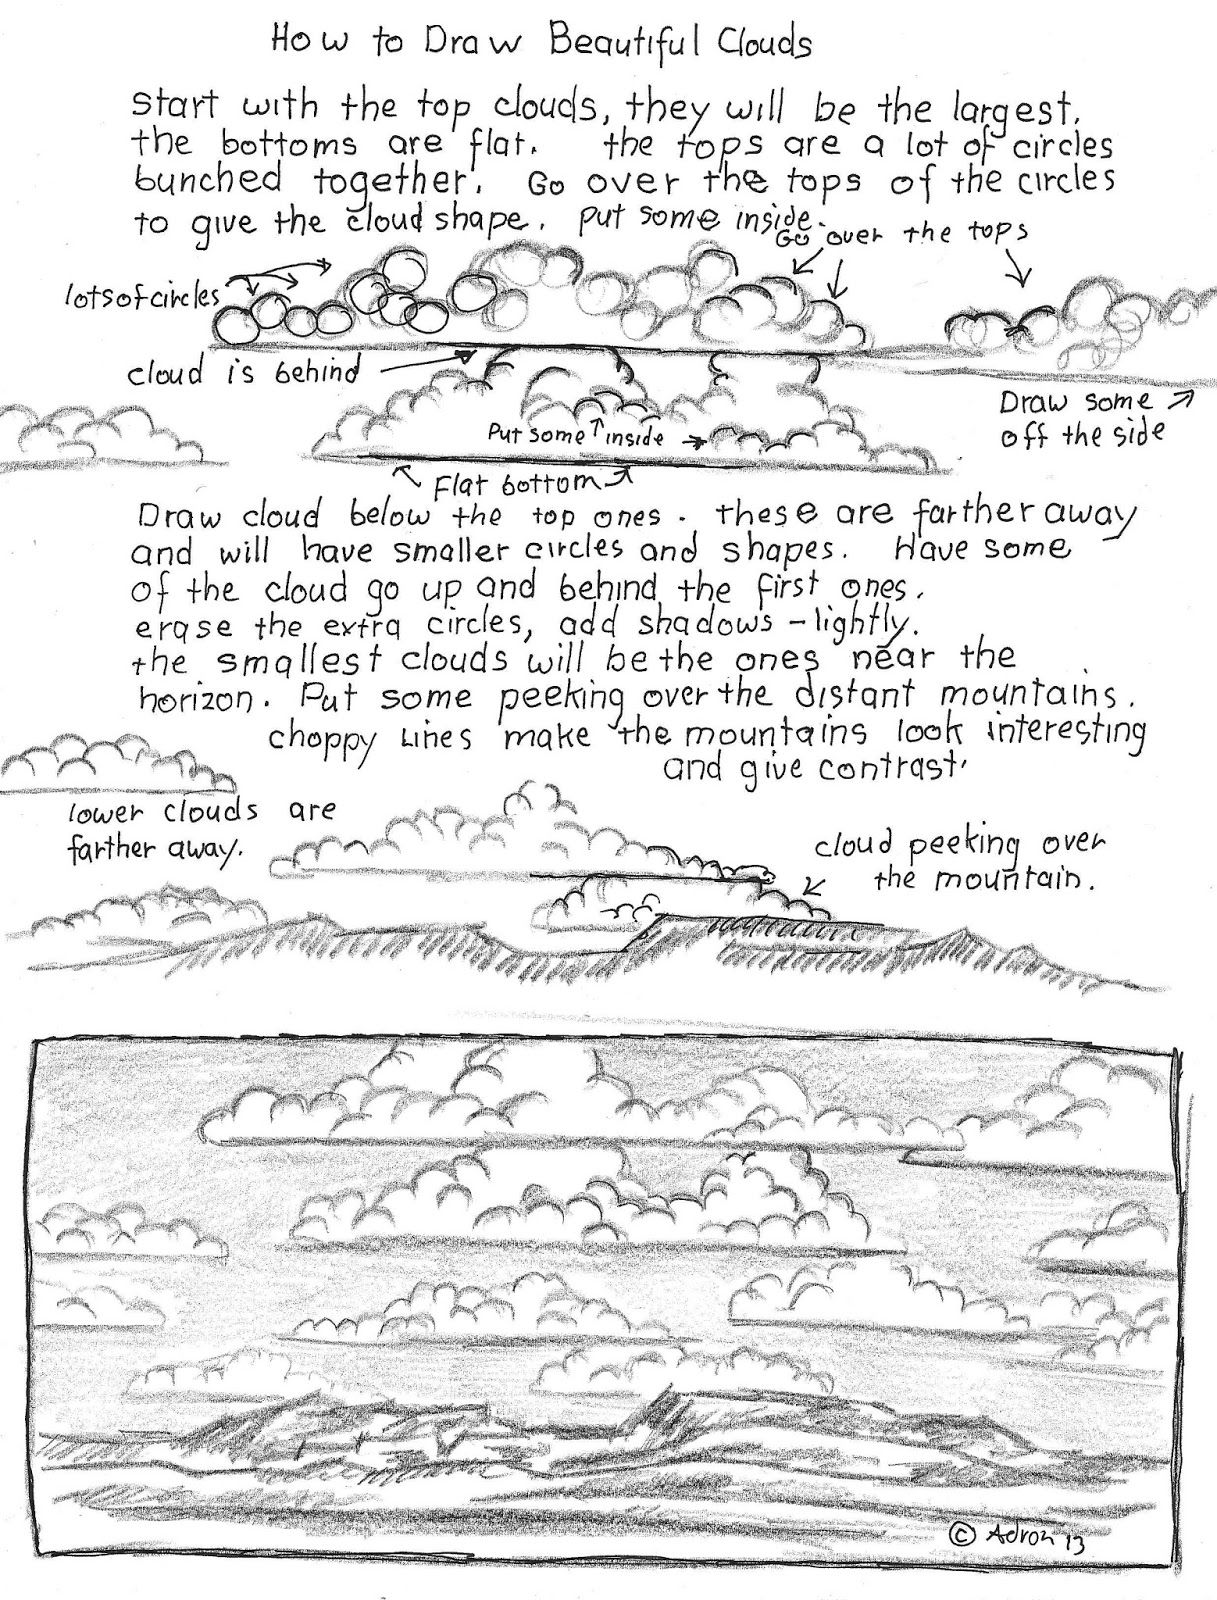 worksheet Cloud Worksheet how to draw beautiful clouds worksheet art lessons for kids worksheet